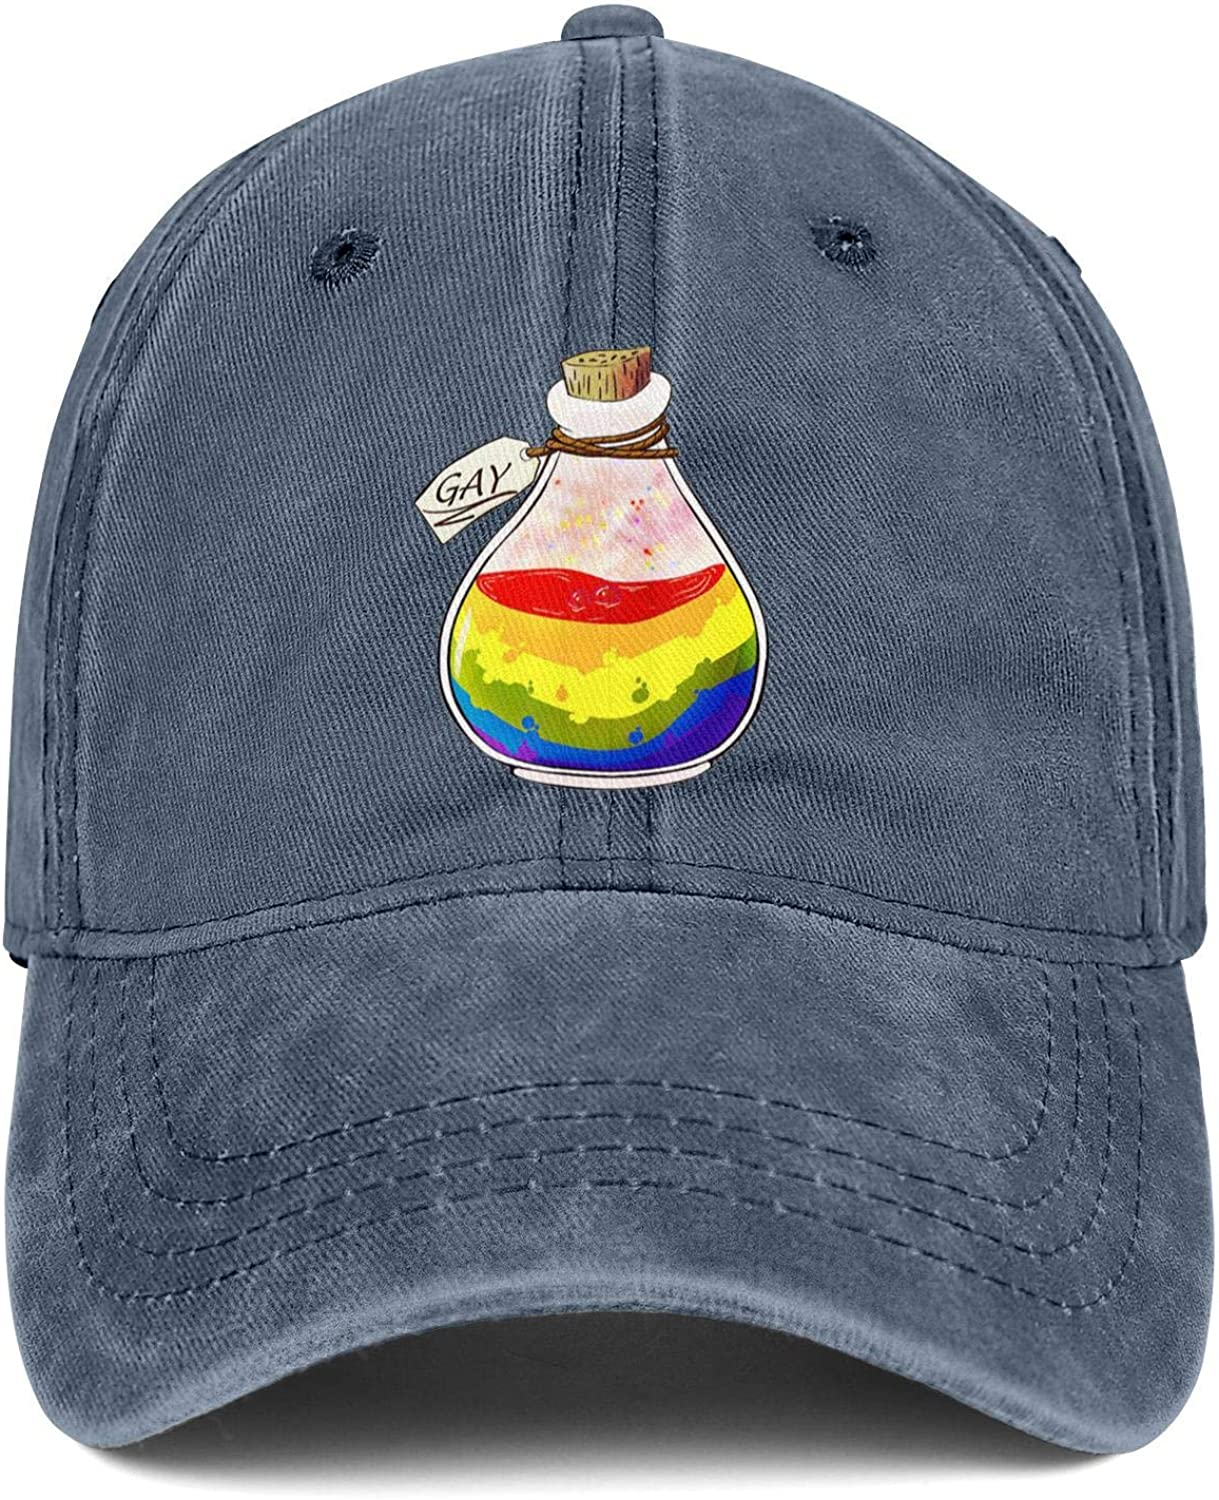 VINUCY Snapback Caps for Mens Making America Gay Again Adjustable Winter Mesh Hats